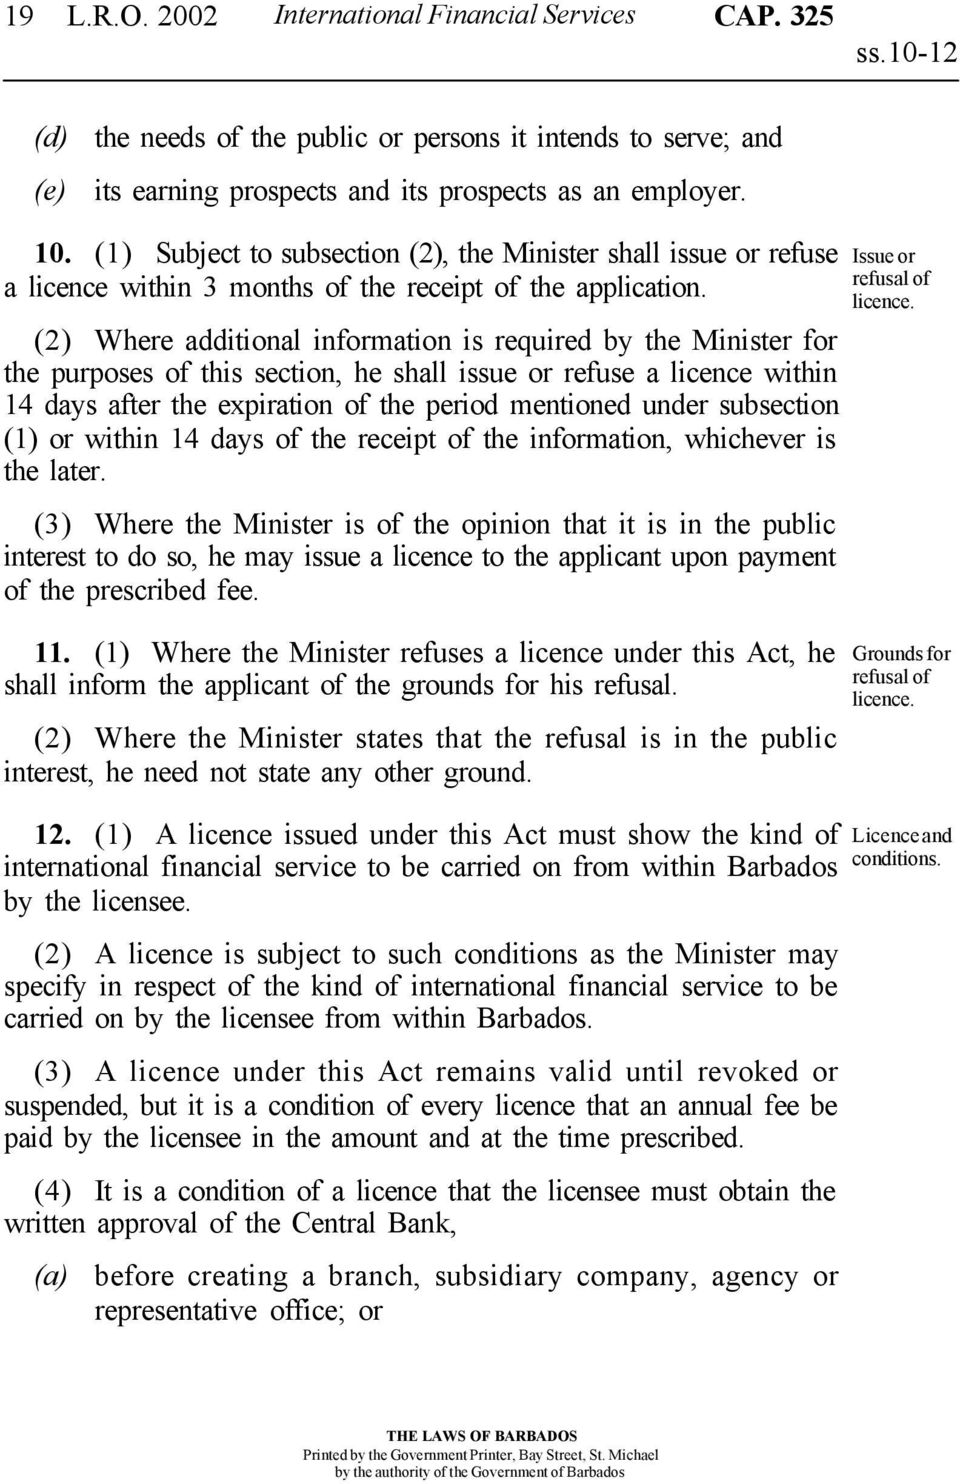 (2) Where additional information is required by the Minister for the purposes of this section, he shall issue or refuse a licence within 14 days after the expiration of the period mentioned under